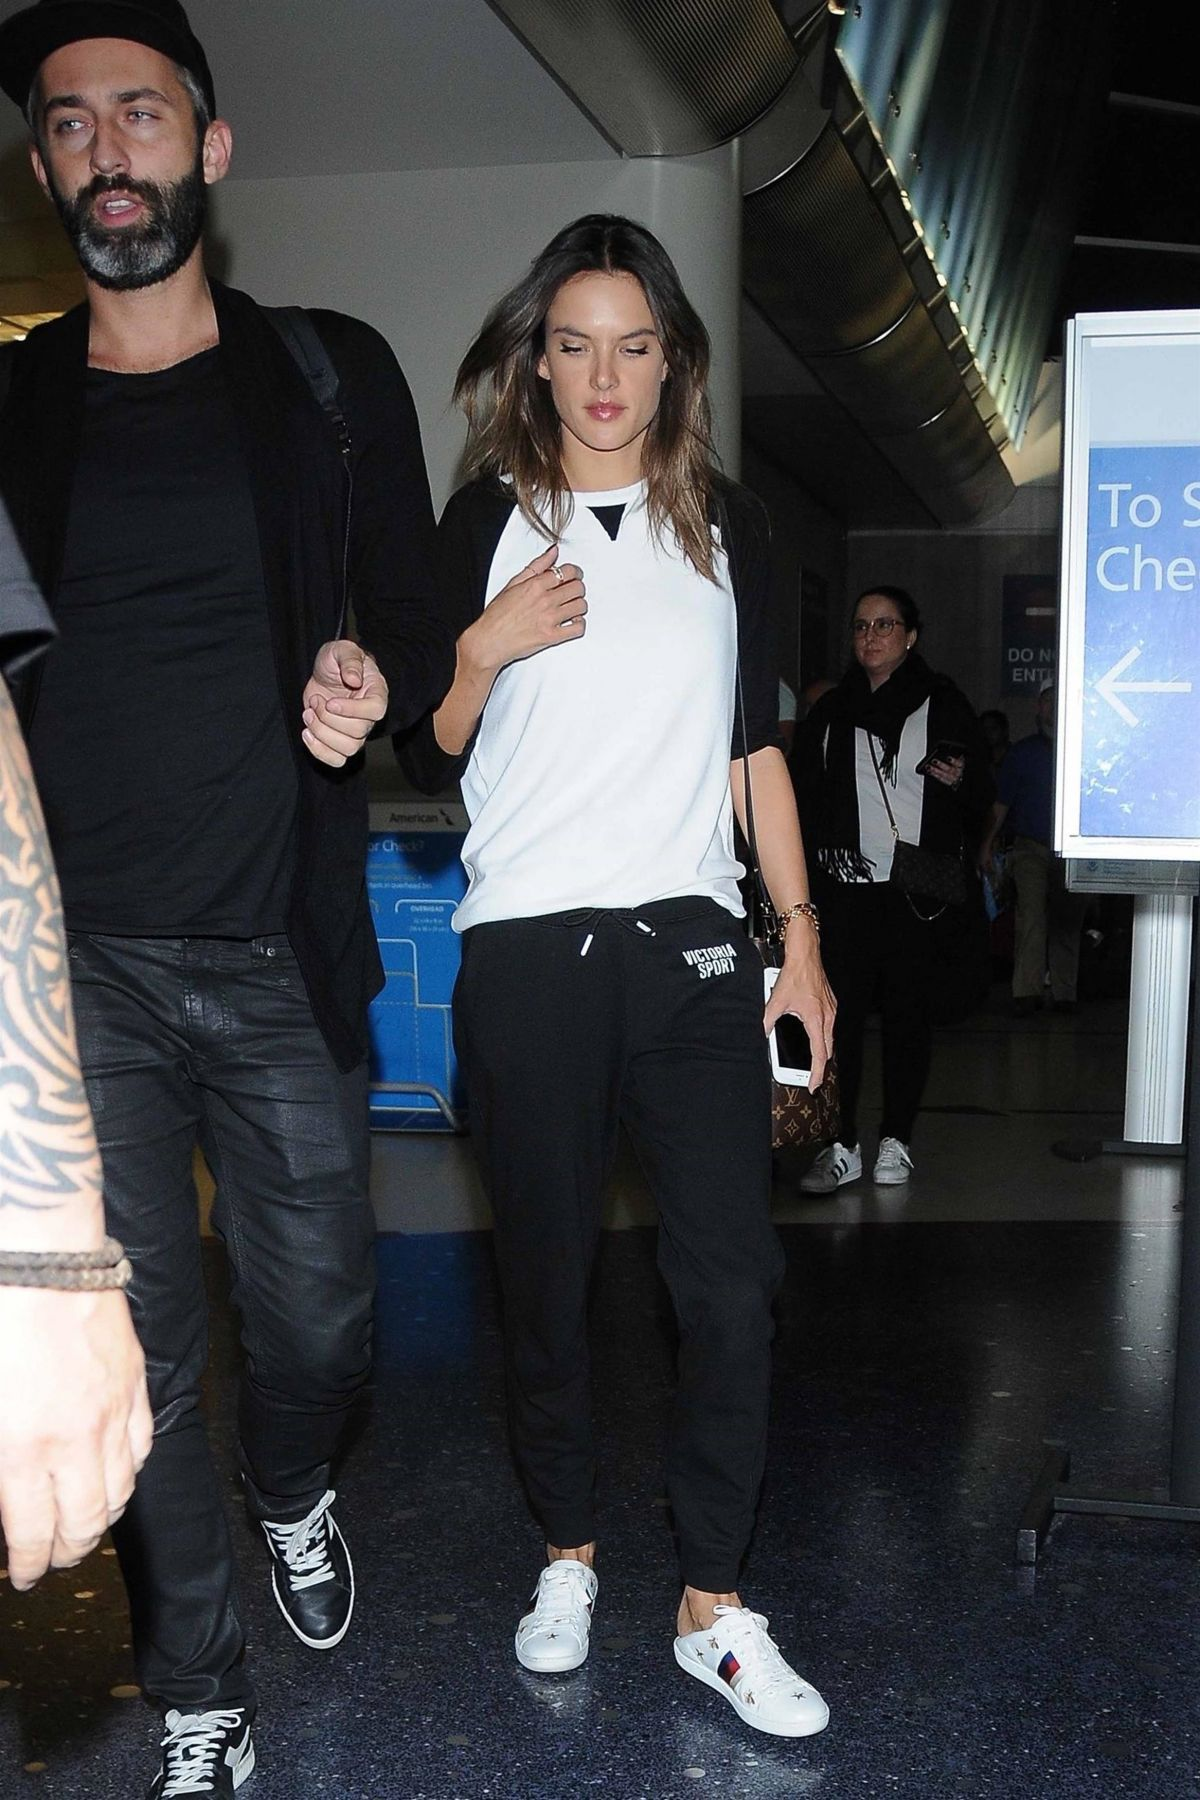 Alessandra Ambrosio Heads through airport after touching down at LAX International Airport in Los Angeles